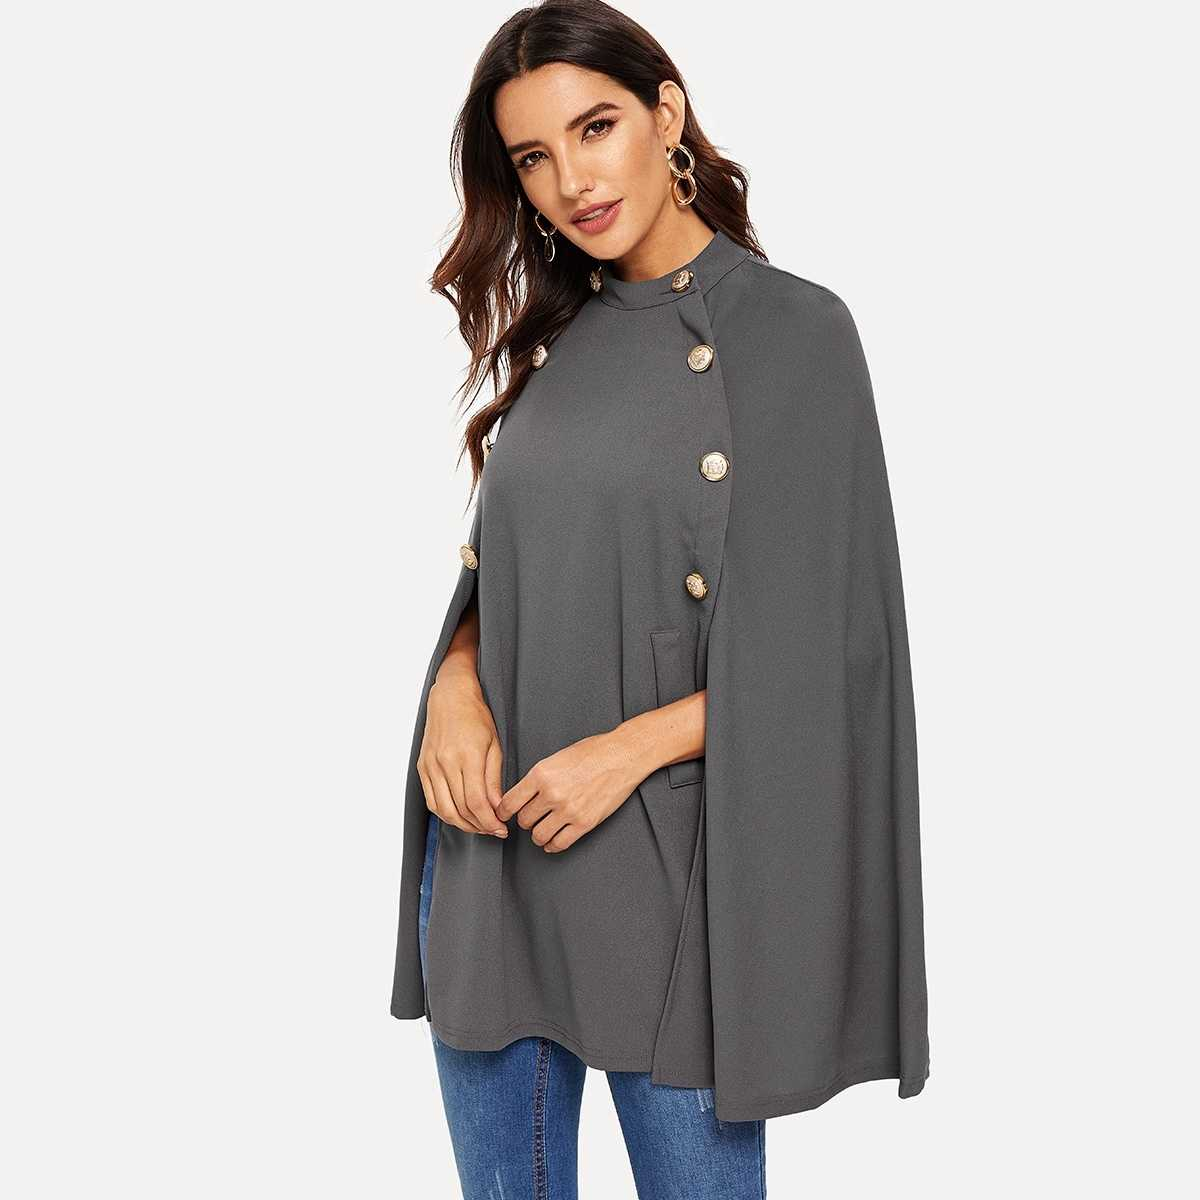 Double Button Mock Poncho Coat in Grey by ROMWE on GOOFASH